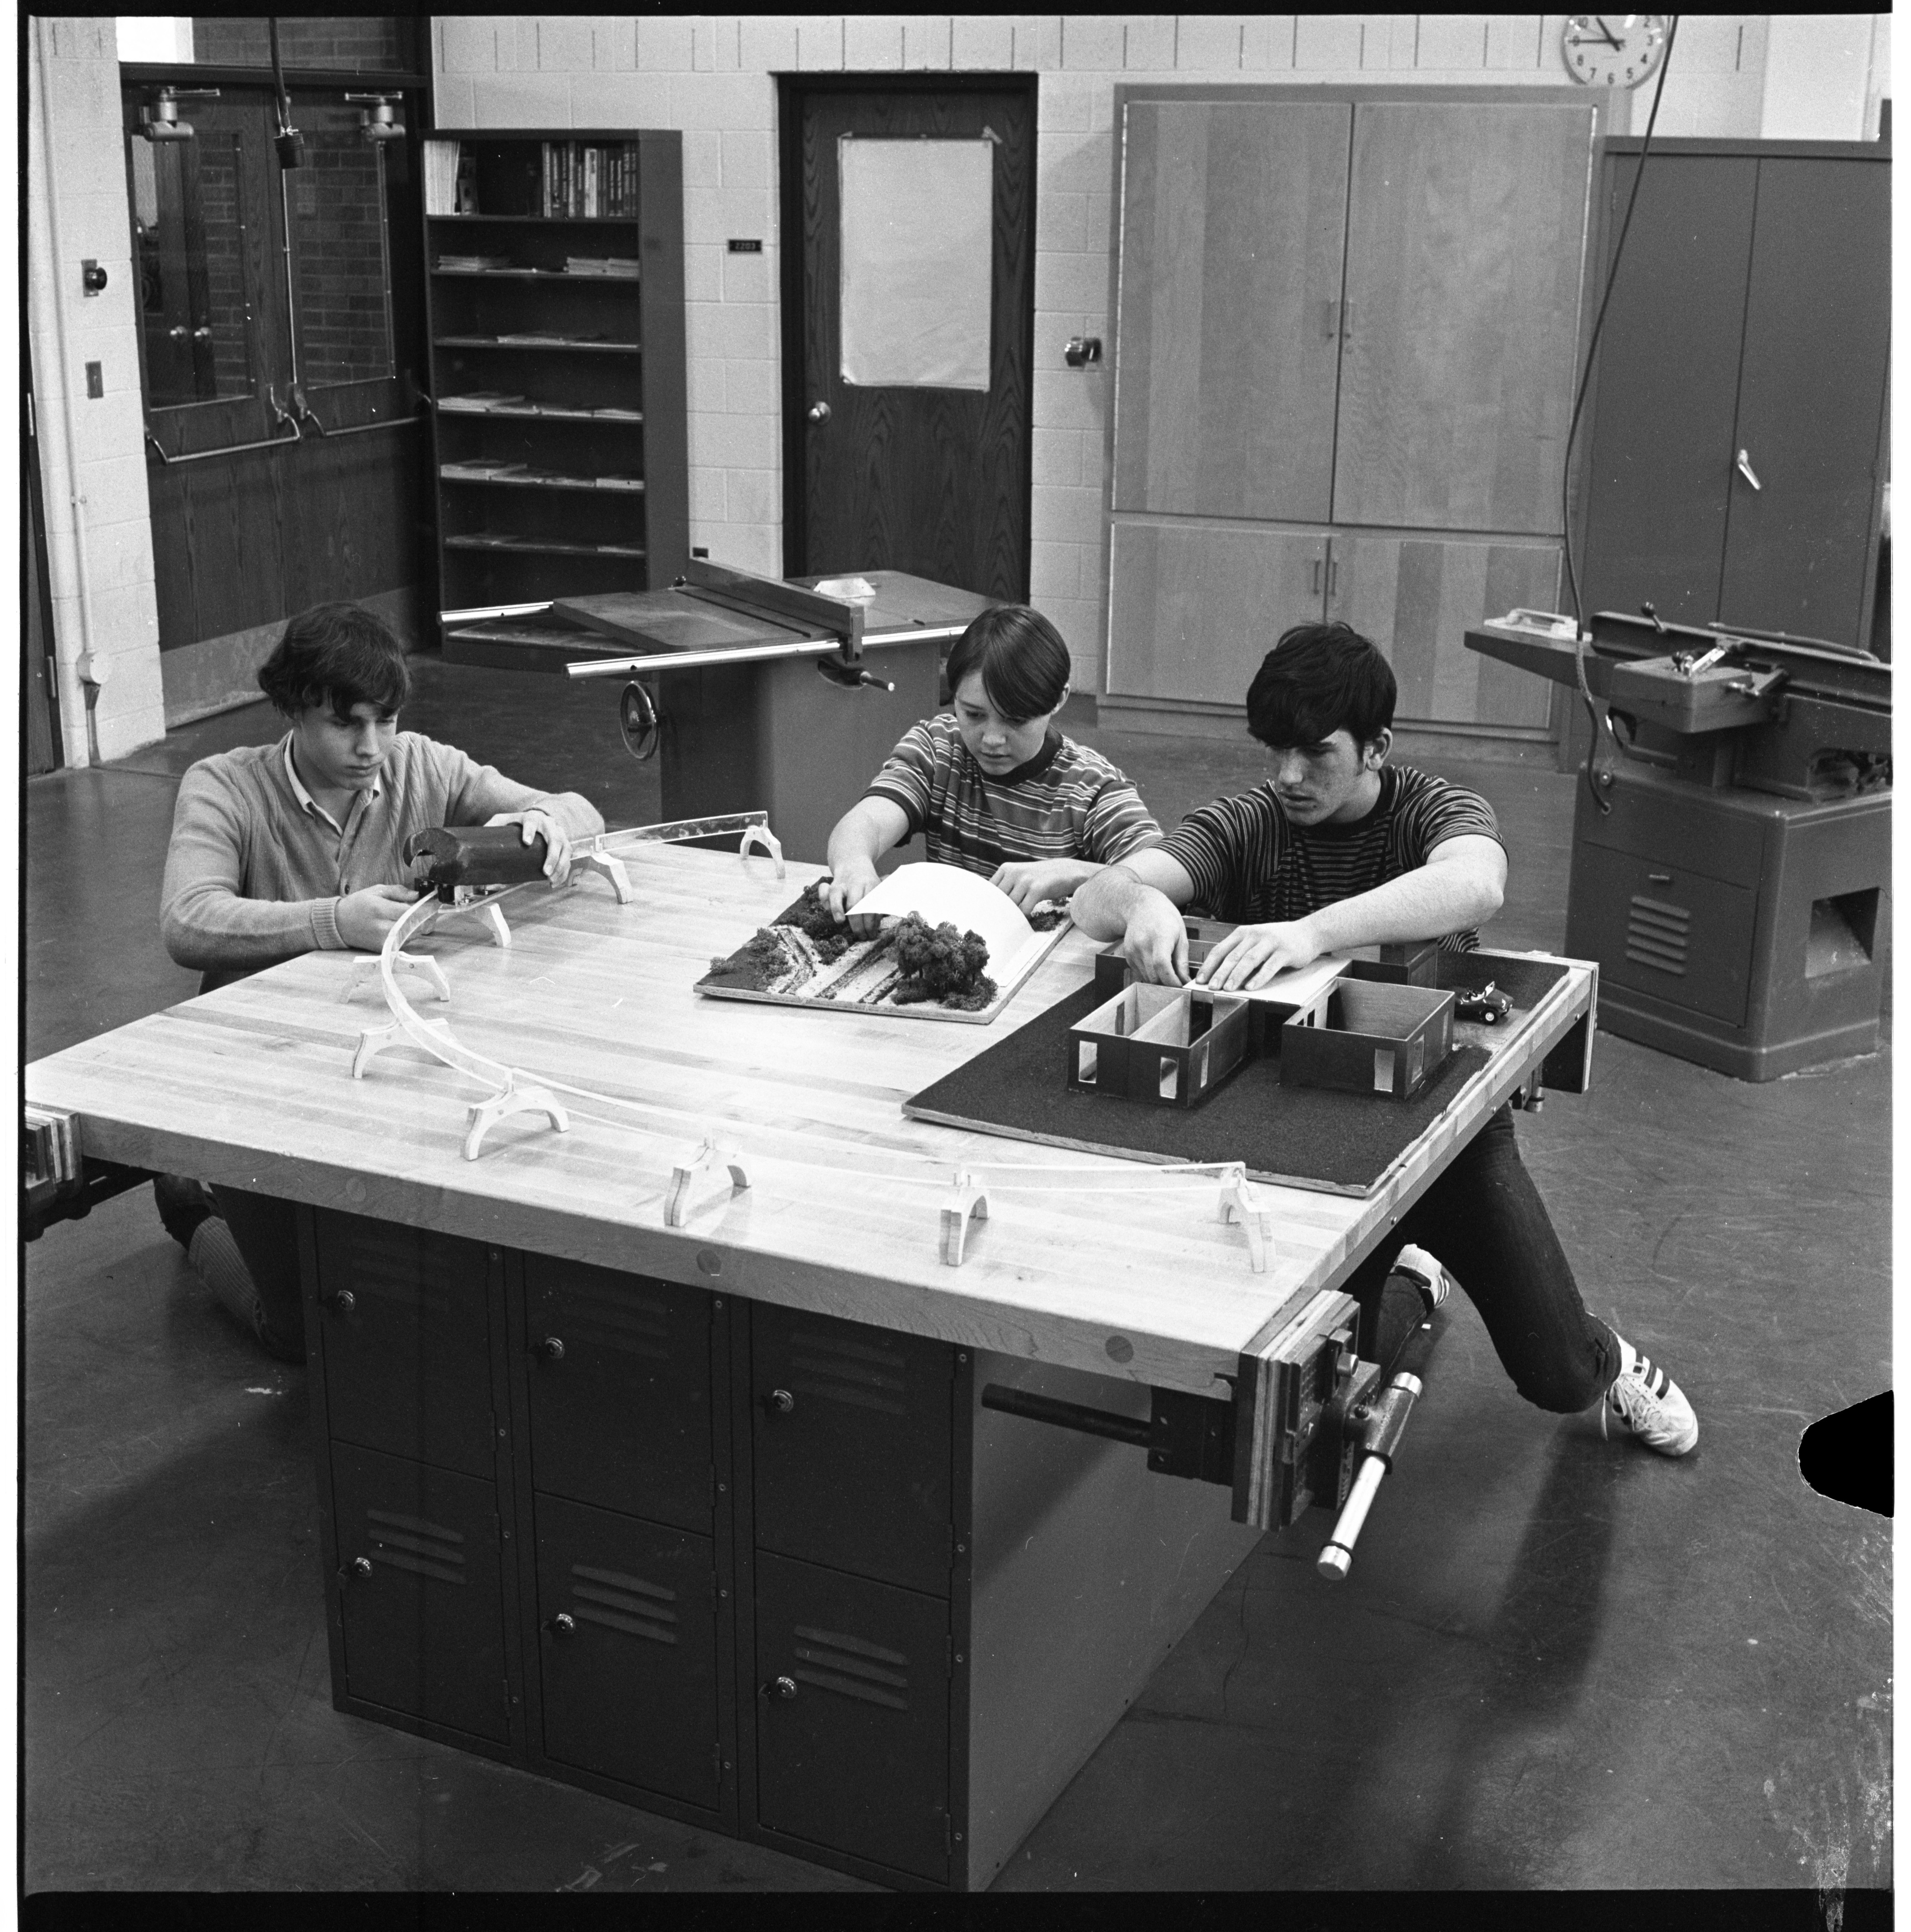 Kurt Ford, Mark McClean, & Donn Raley In Huron High School's Industrial Processes Class, January 1970 image